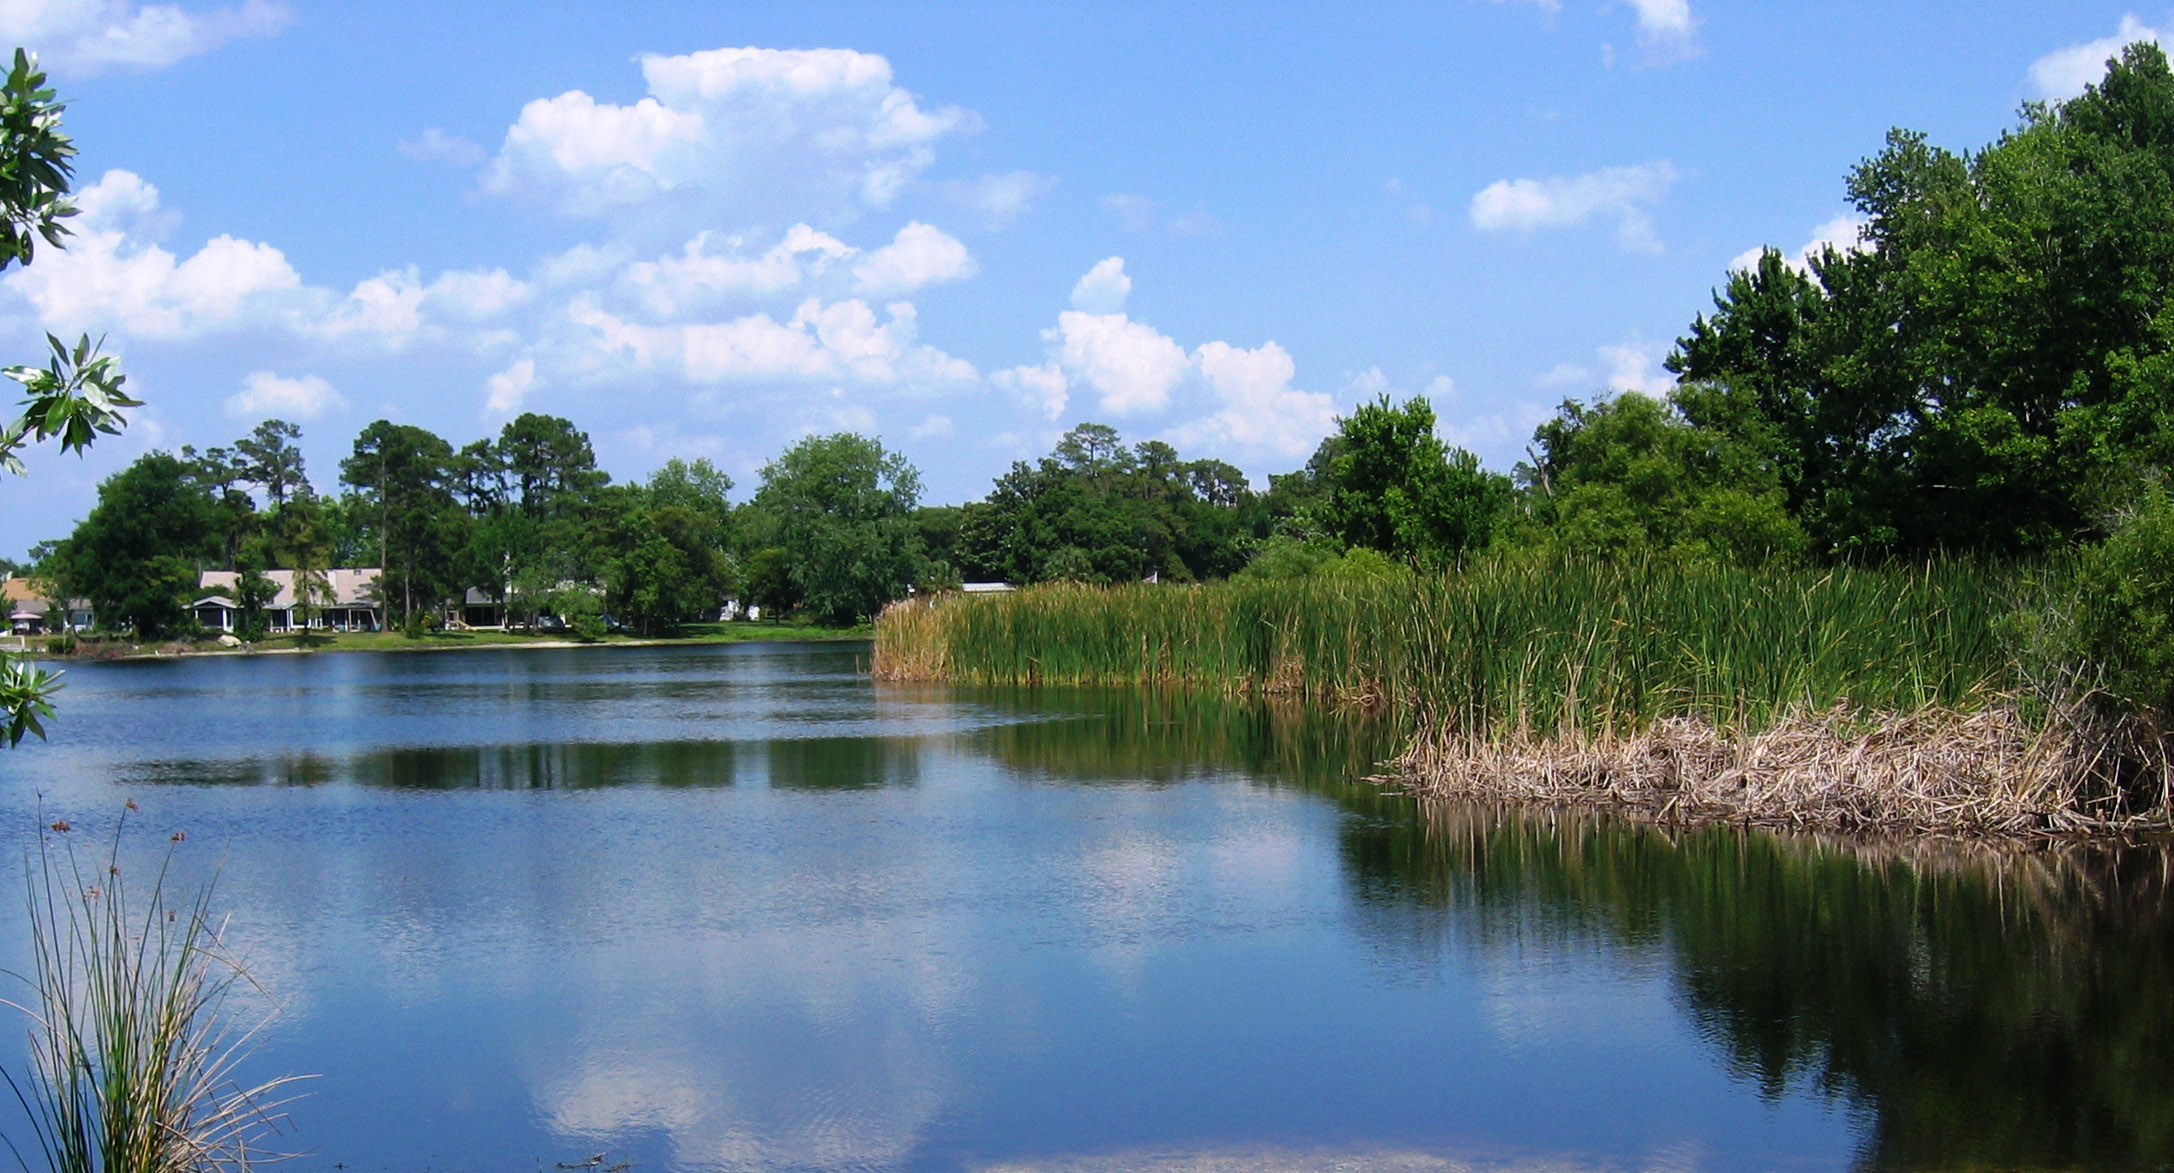 North Triplet Lake In Casselberry Florida Image Free